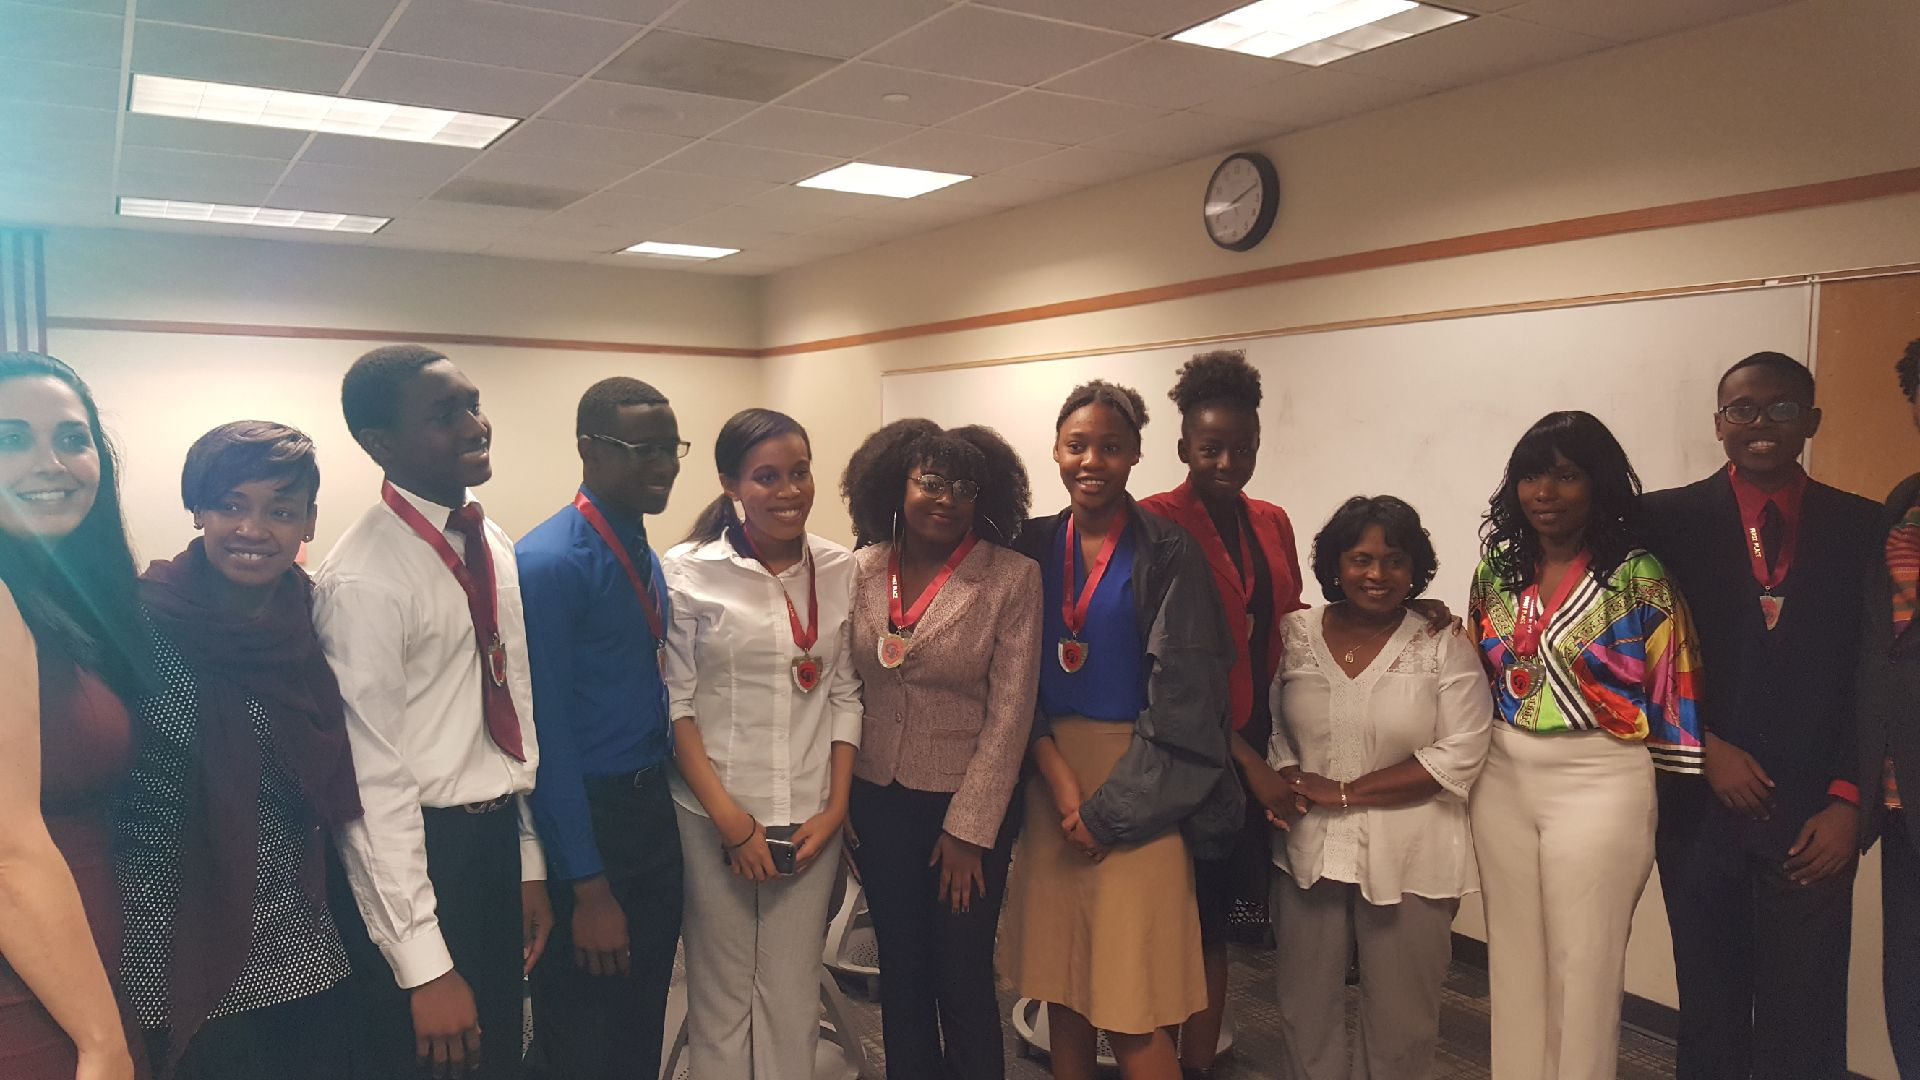 Hillsborough County Public Schools school social worker Julina Dolce Gurganious and her teams dominated the county and regional Cultural History Brain Bowl and moving up to the state level competition. Photo courtesy of Julina Gurganious.